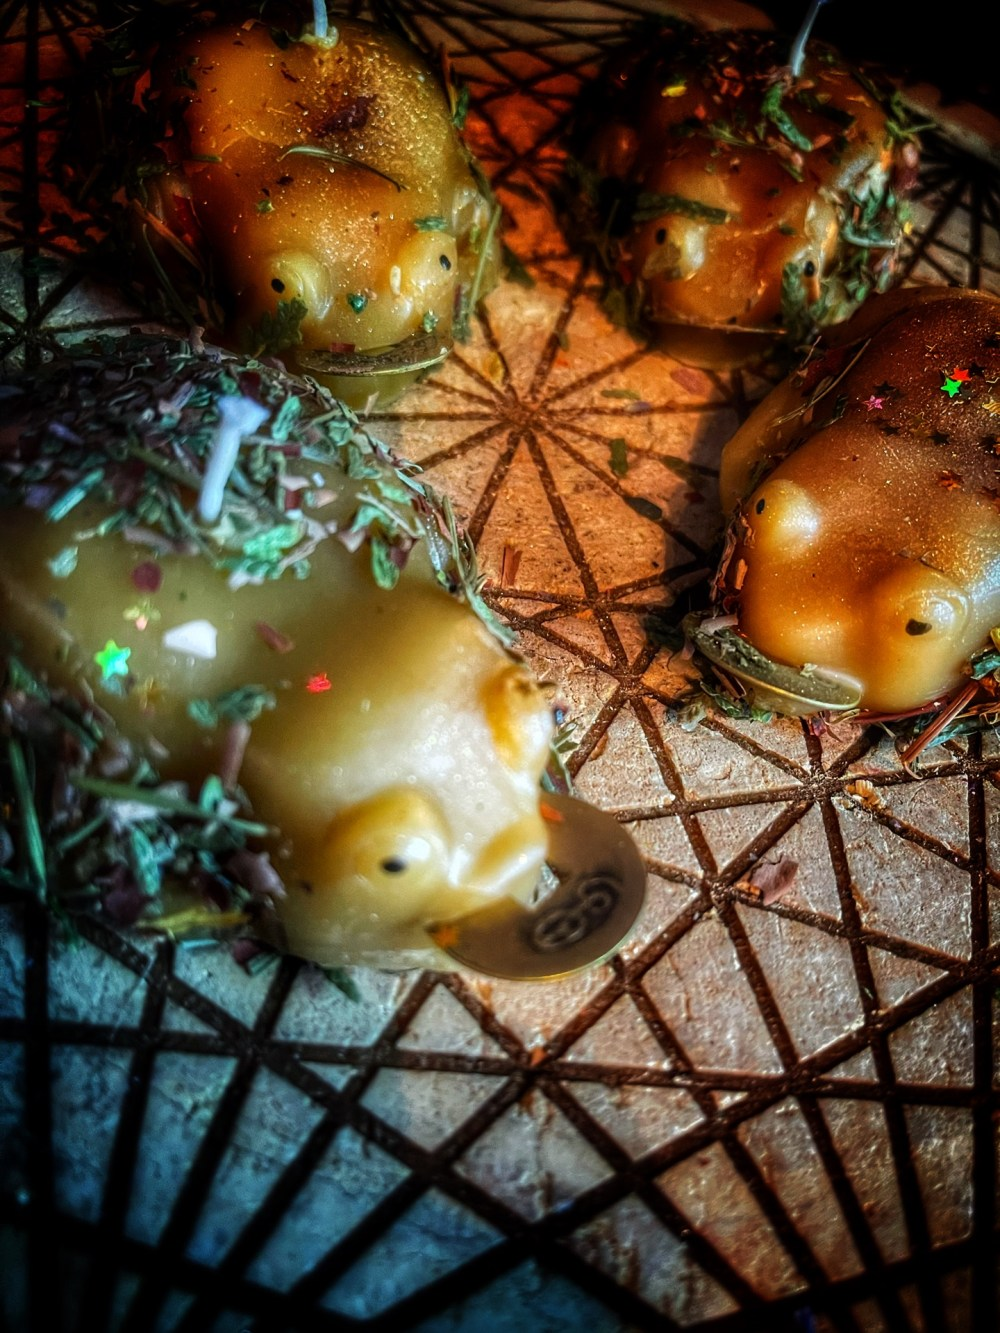 The Golden Money Toad Dressed Beeswax Candle